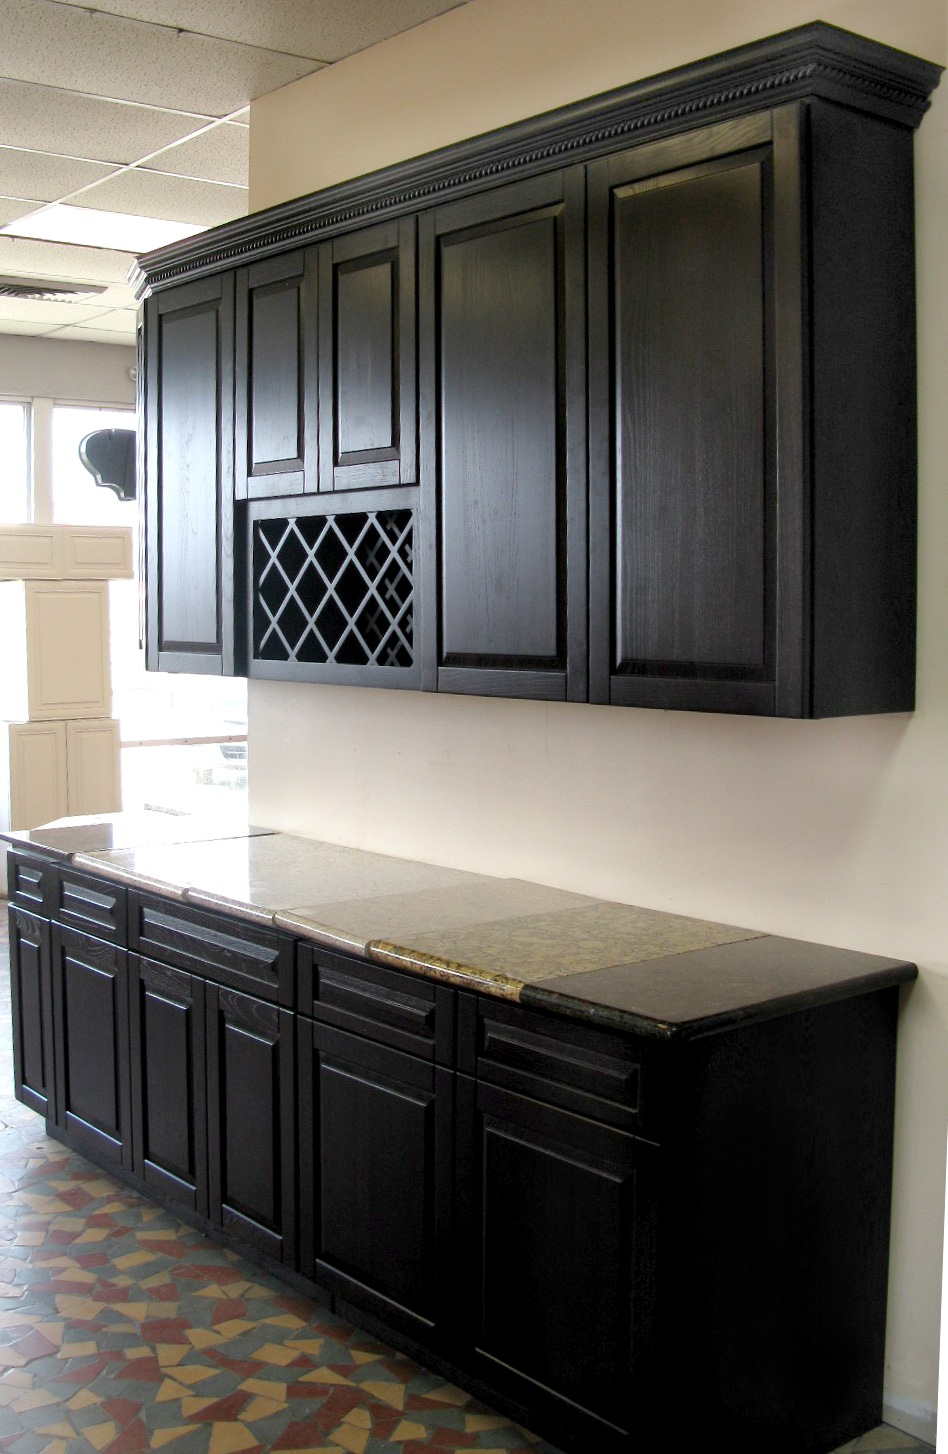 kitchen cabinet ideas small kitchens on Cabinets for Kitchen: Photos Black Kitchen Cabinets